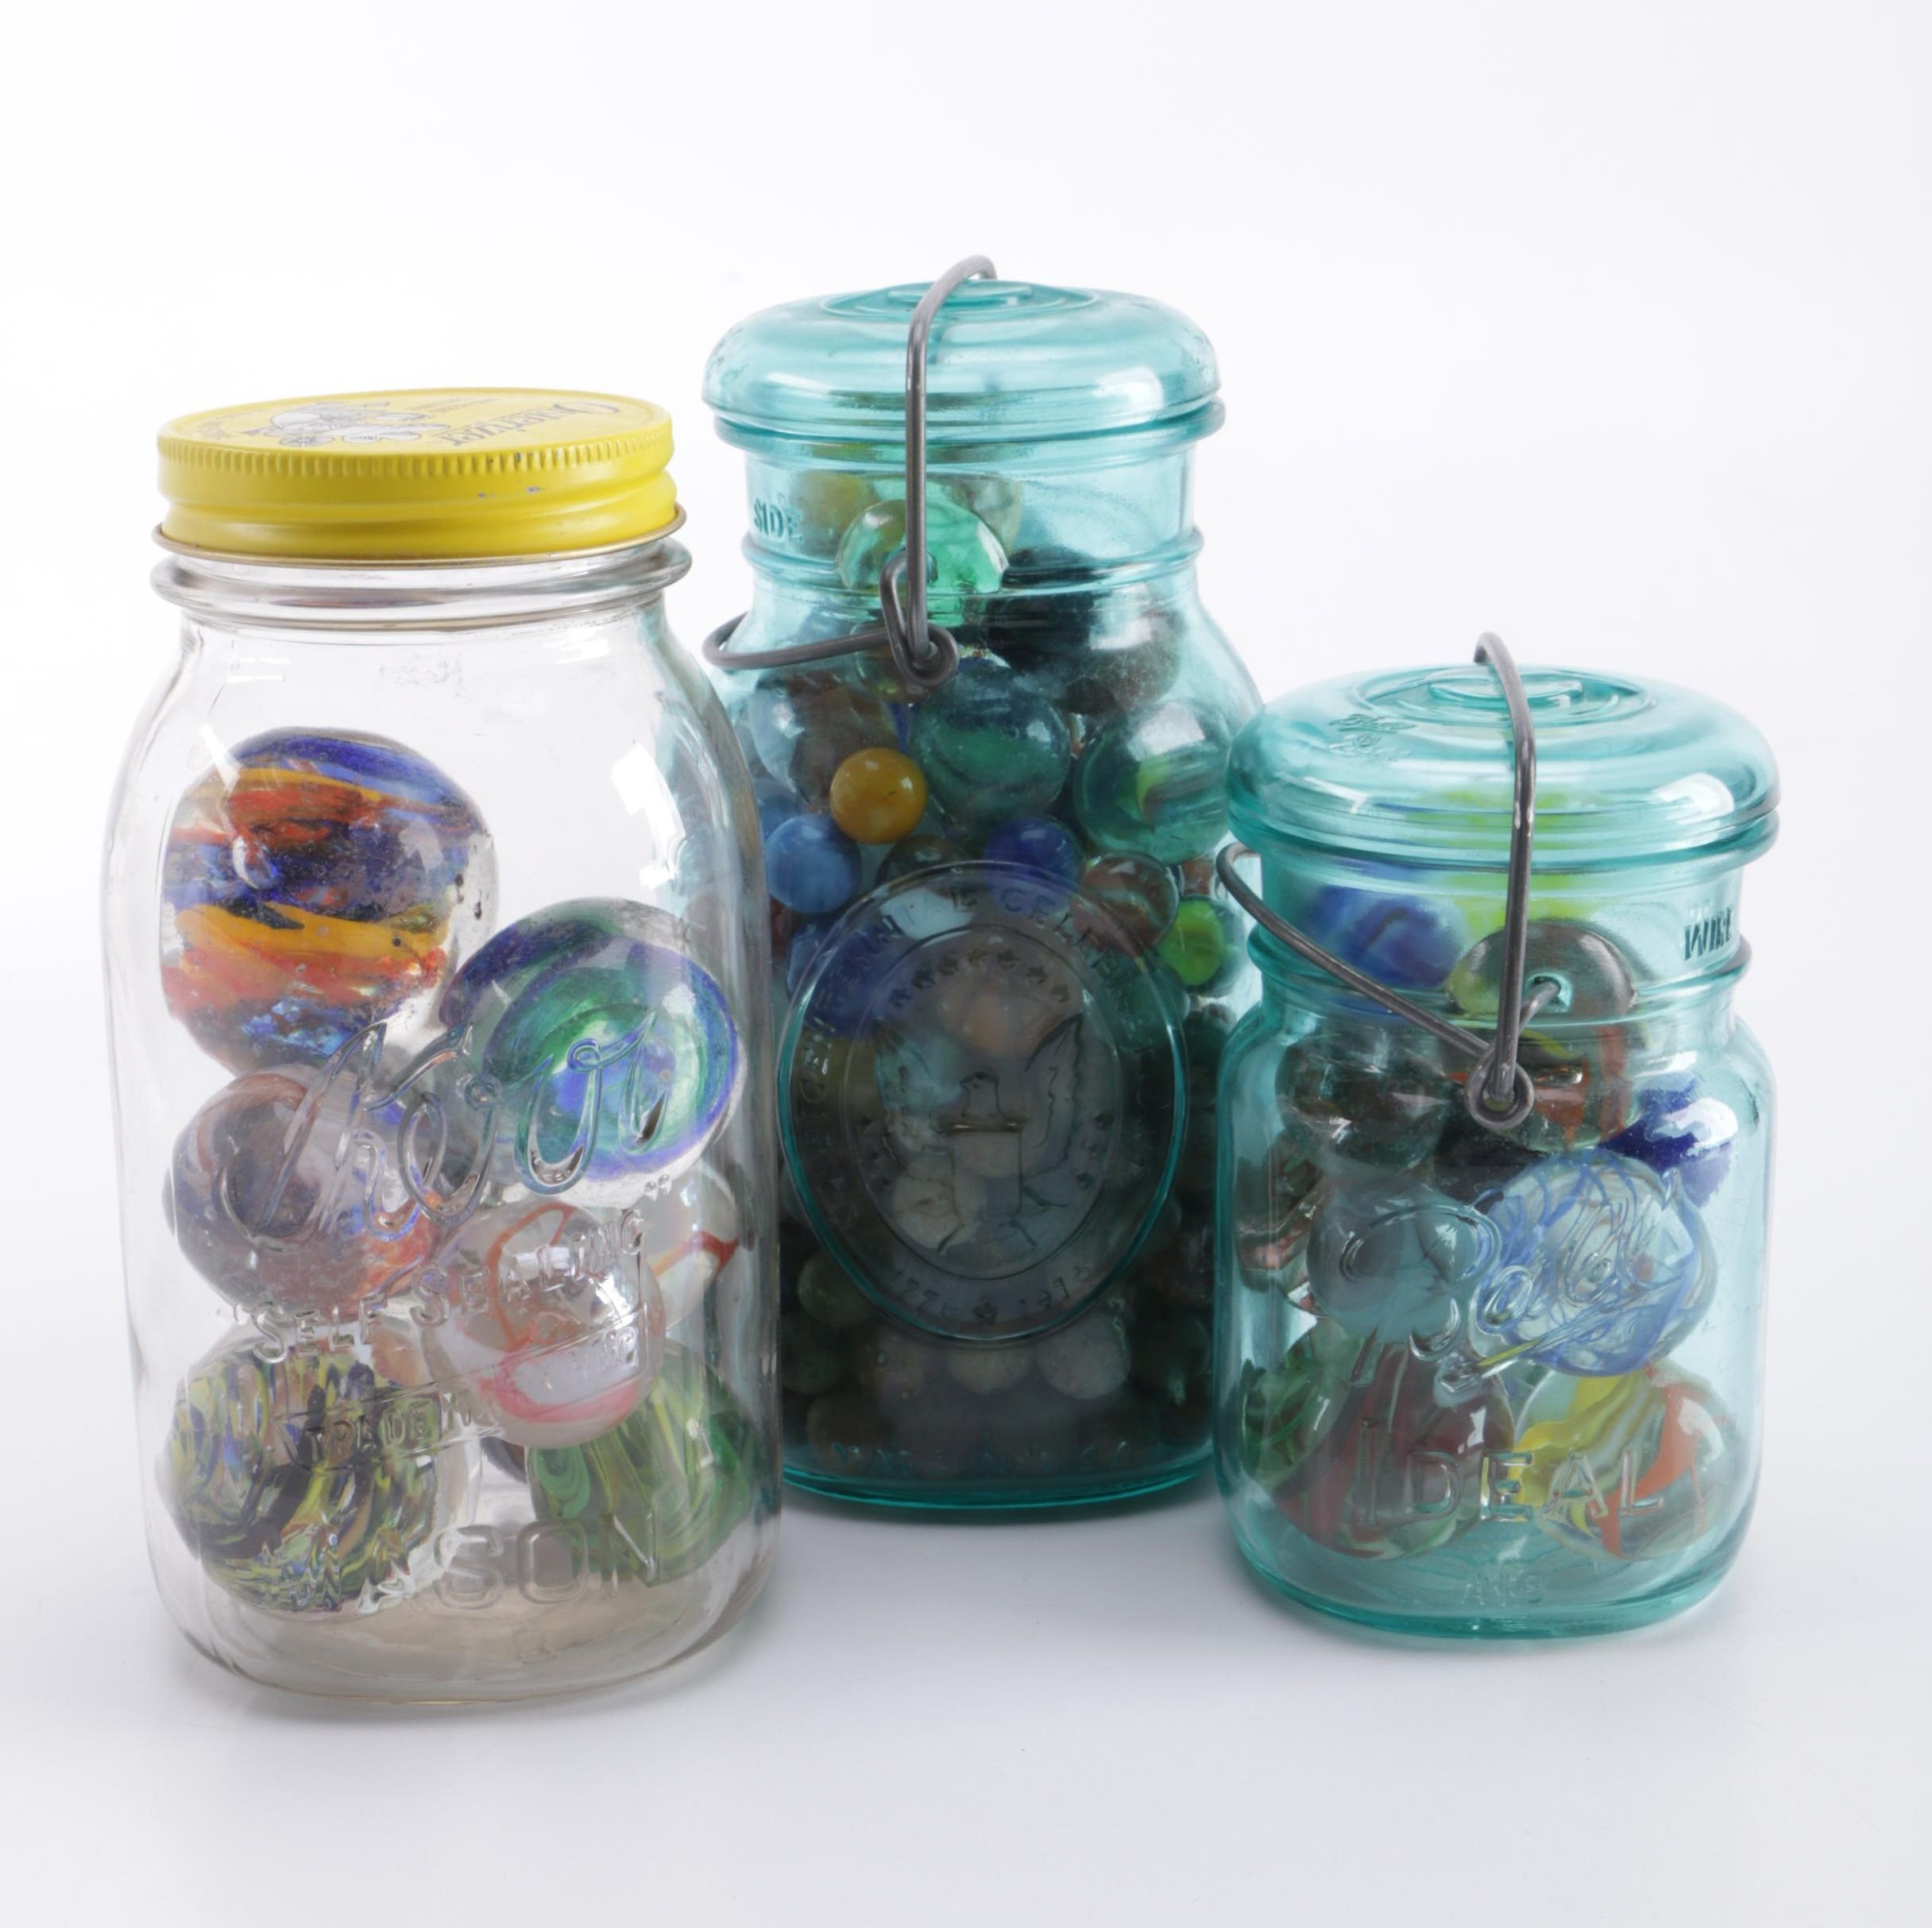 Collection of Vintage Jars and Marbles